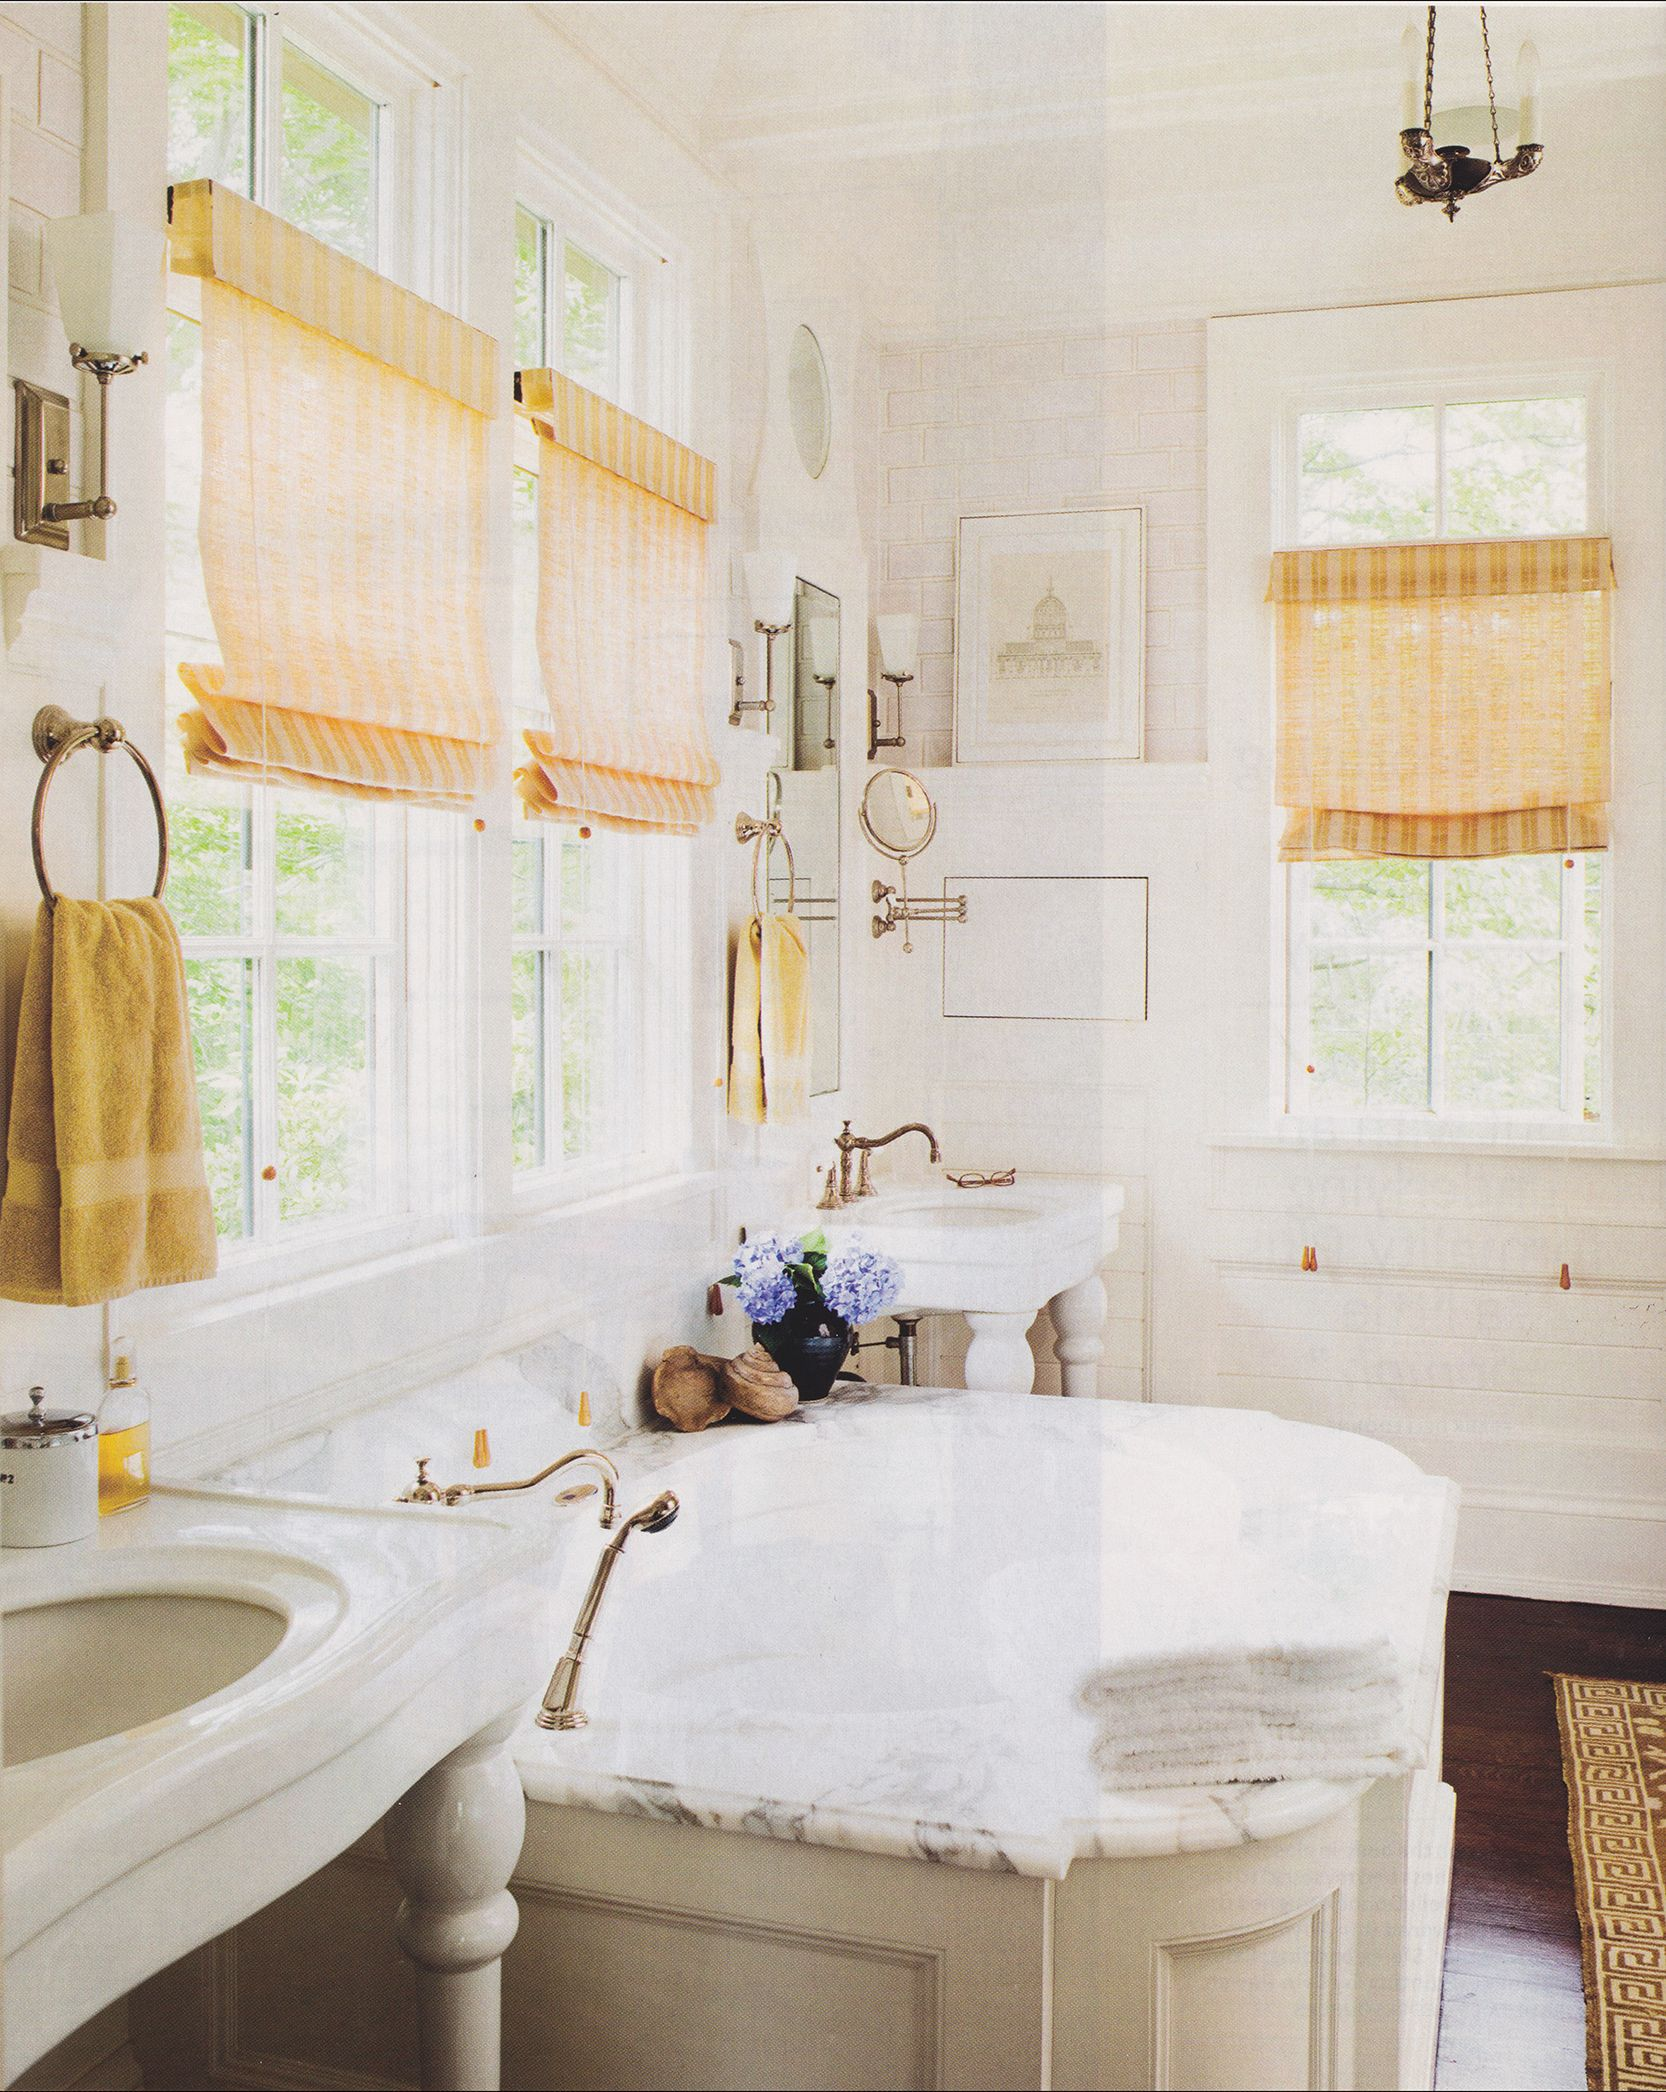 Great use of space in this country bathroom. #magazinetearout ...